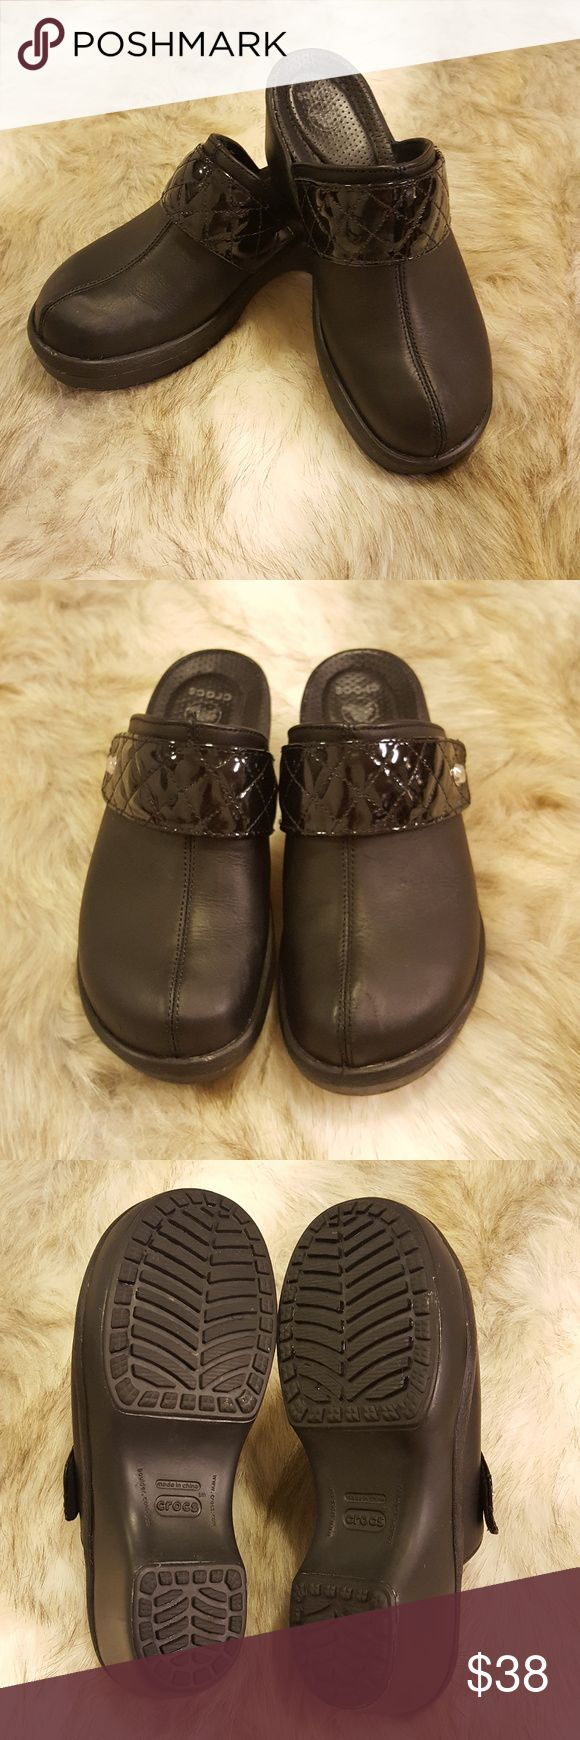 Women's Crocs Sarah Clog Black Size W7 * Gently worn! Nice condition. I wasn't able to find another pair like this online! * Size and Weight included in pics. * Fast shipping! * Offers welcome. Bundle to save $$$! * Art courtesy of A Room Full of Paintings. Use PROMO CODE: SweetTeeTab for 20% off! Link below. https://www.aroomfullofpaintings.com/ crocs Shoes Mules & Clogs